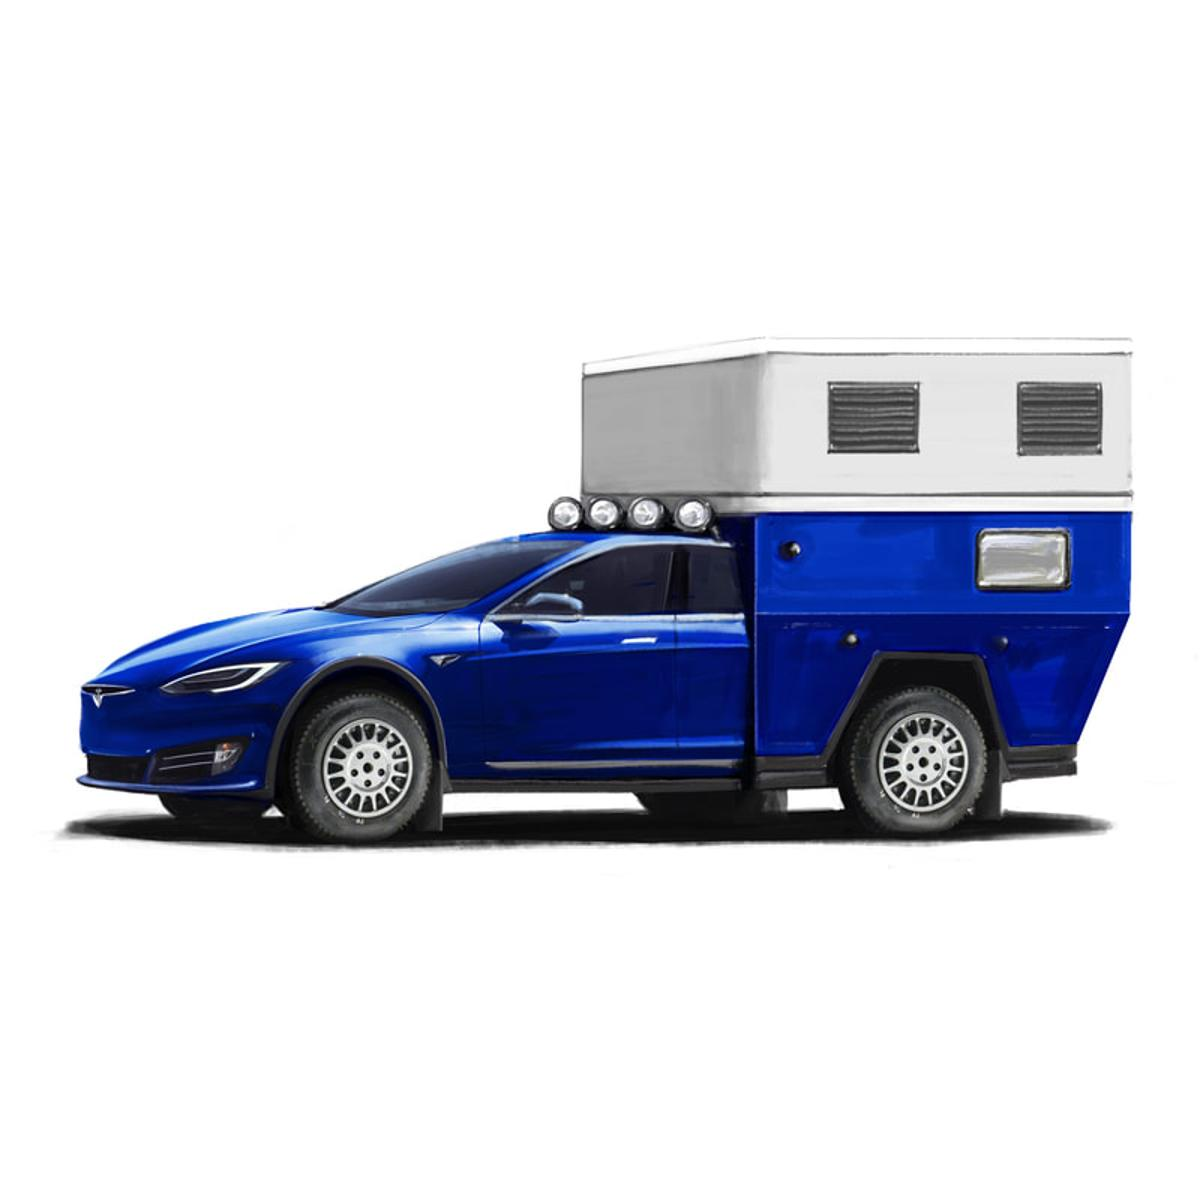 Camping in breezy, ventilated comfort on a Tesla Model S